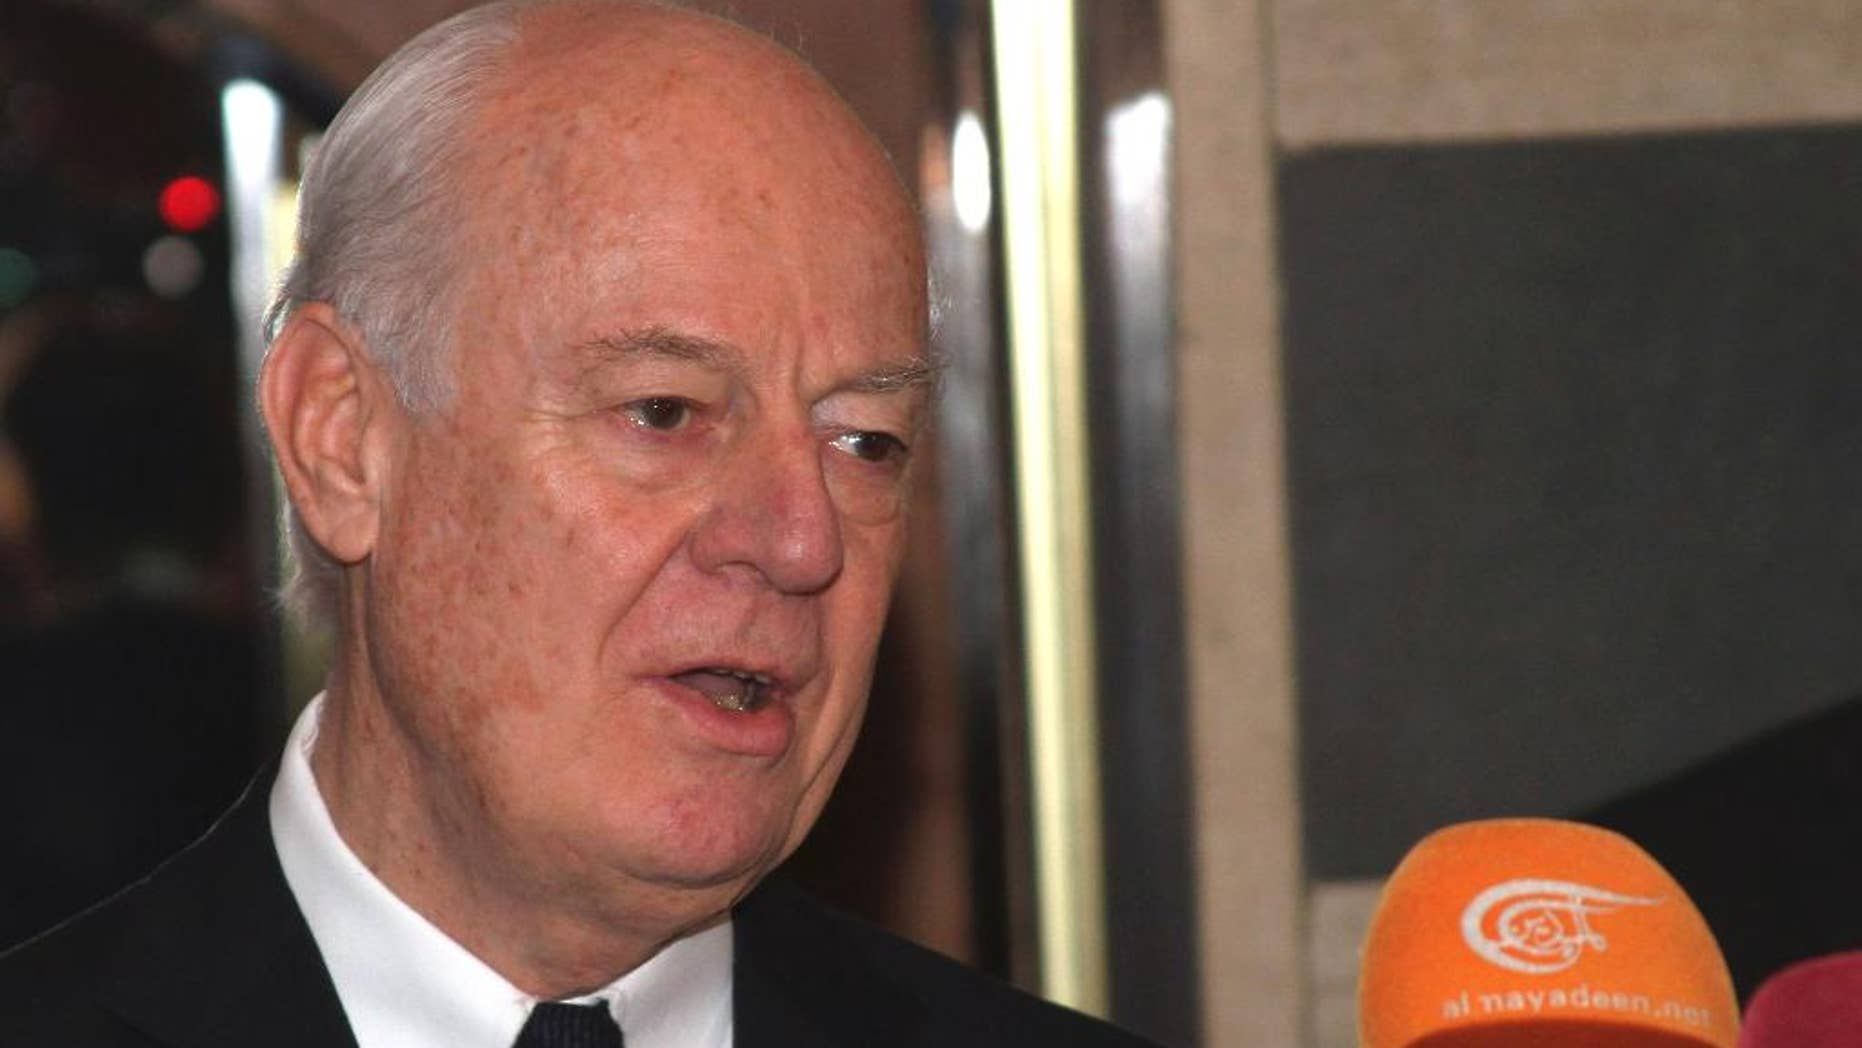 U.N. Special Envoy for Syria Staffan de Mistura speaks with reporters in Damascus, Syria Wednesday, Feb. 11, 2015 following a meeting with Syrian President Bashar Assad. De Mistura said he met with Assad to discuss a U.N. initiative to cease hostilities in the northern city of Aleppo. (AP Photo)